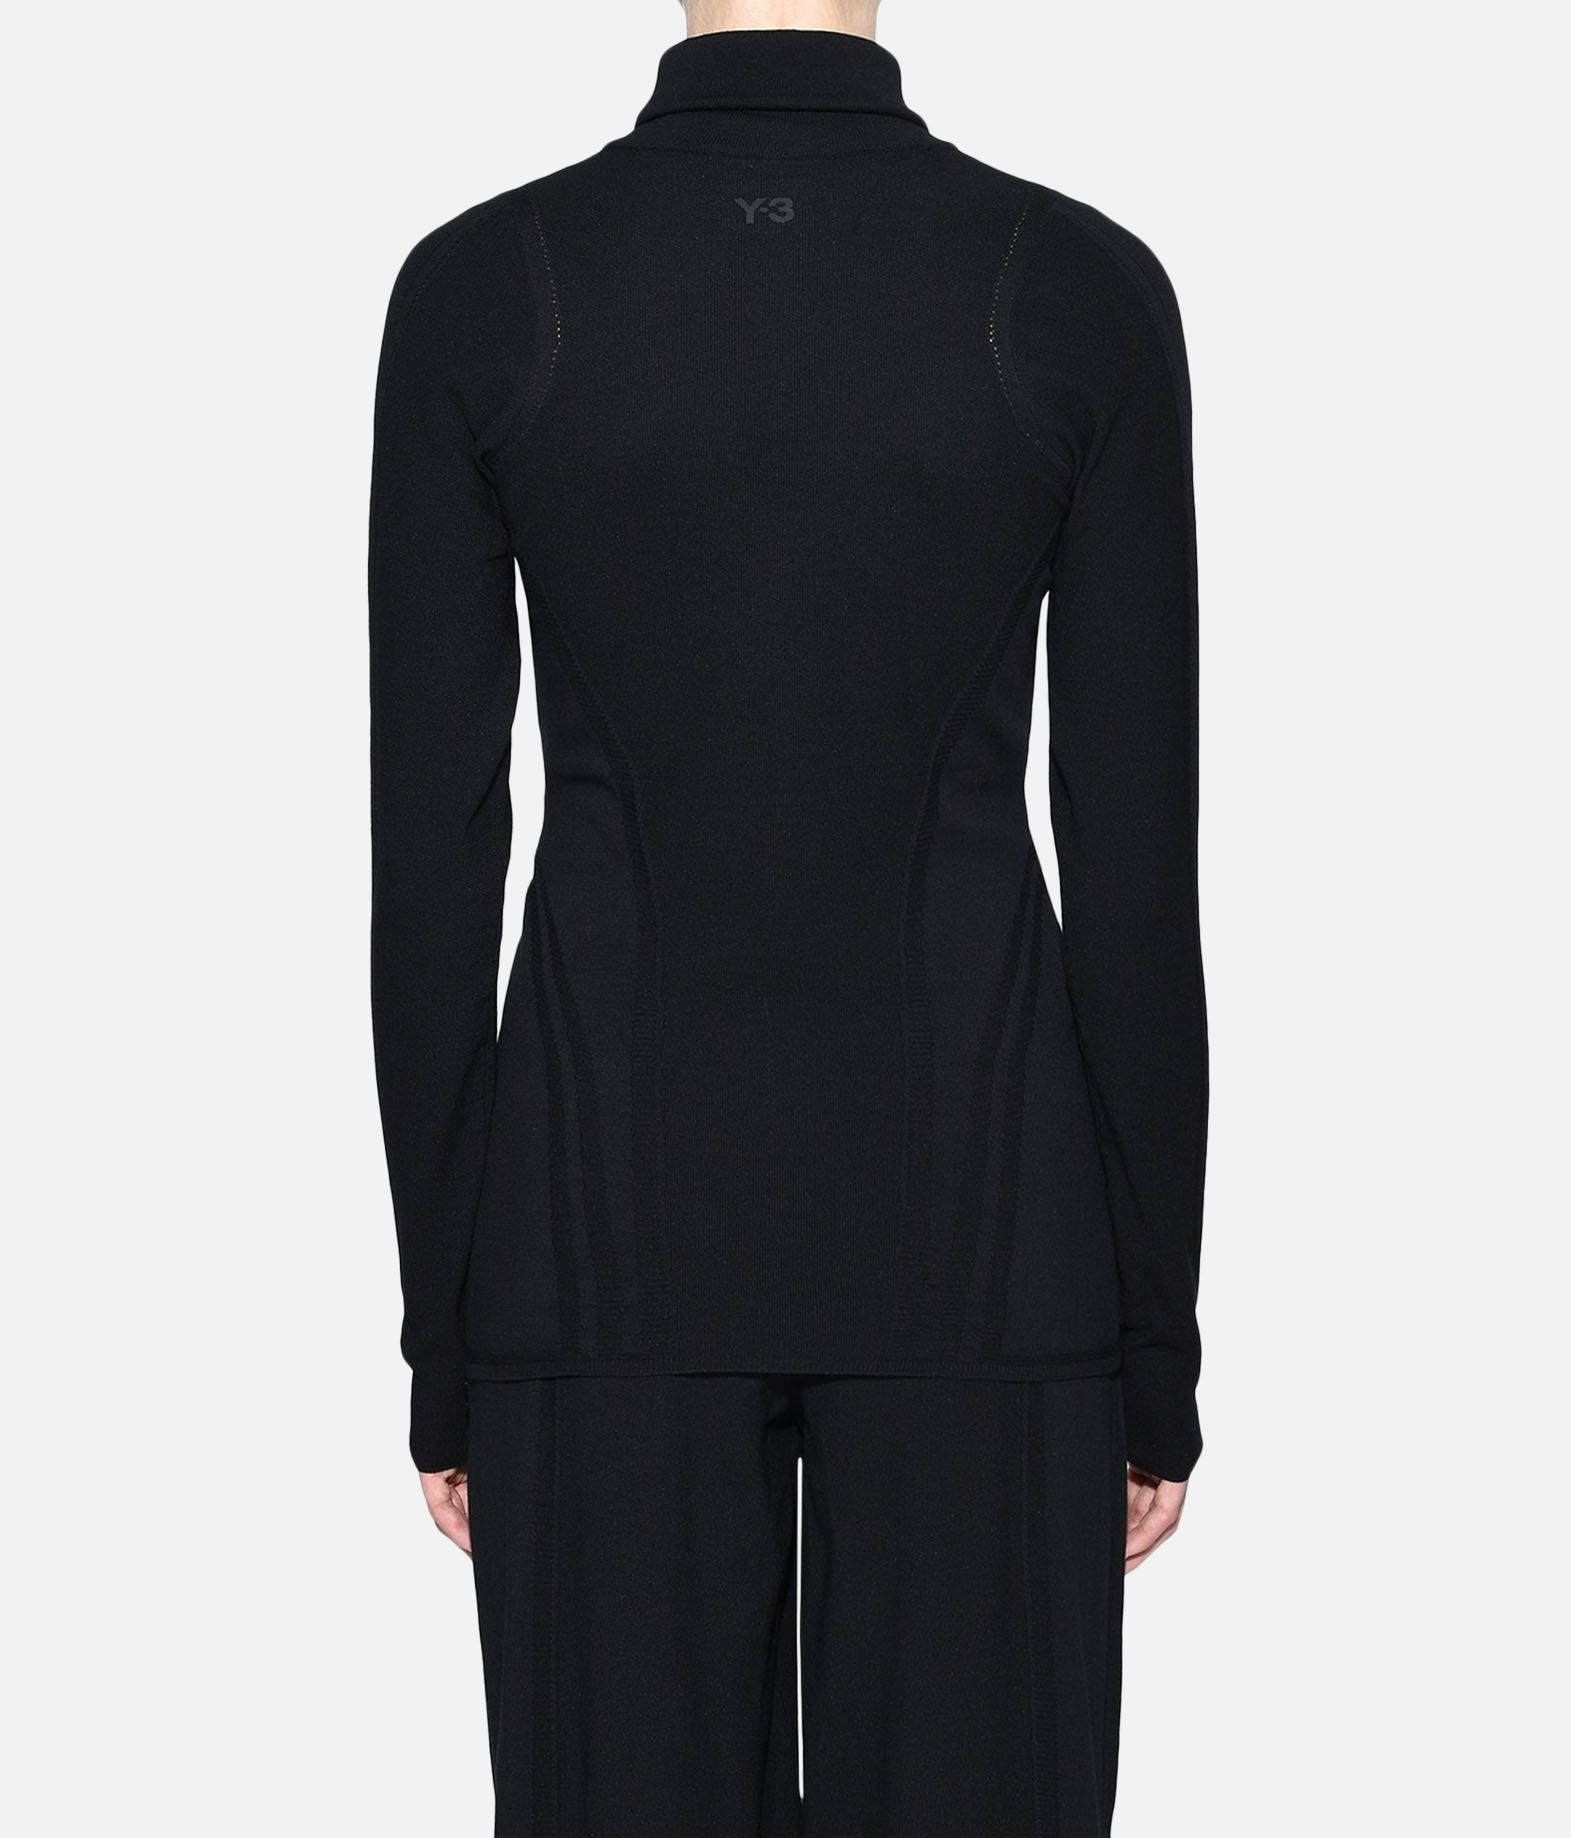 Y-3 Y-3 Tech Wool High Neck Tee Long sleeve t-shirt Woman d